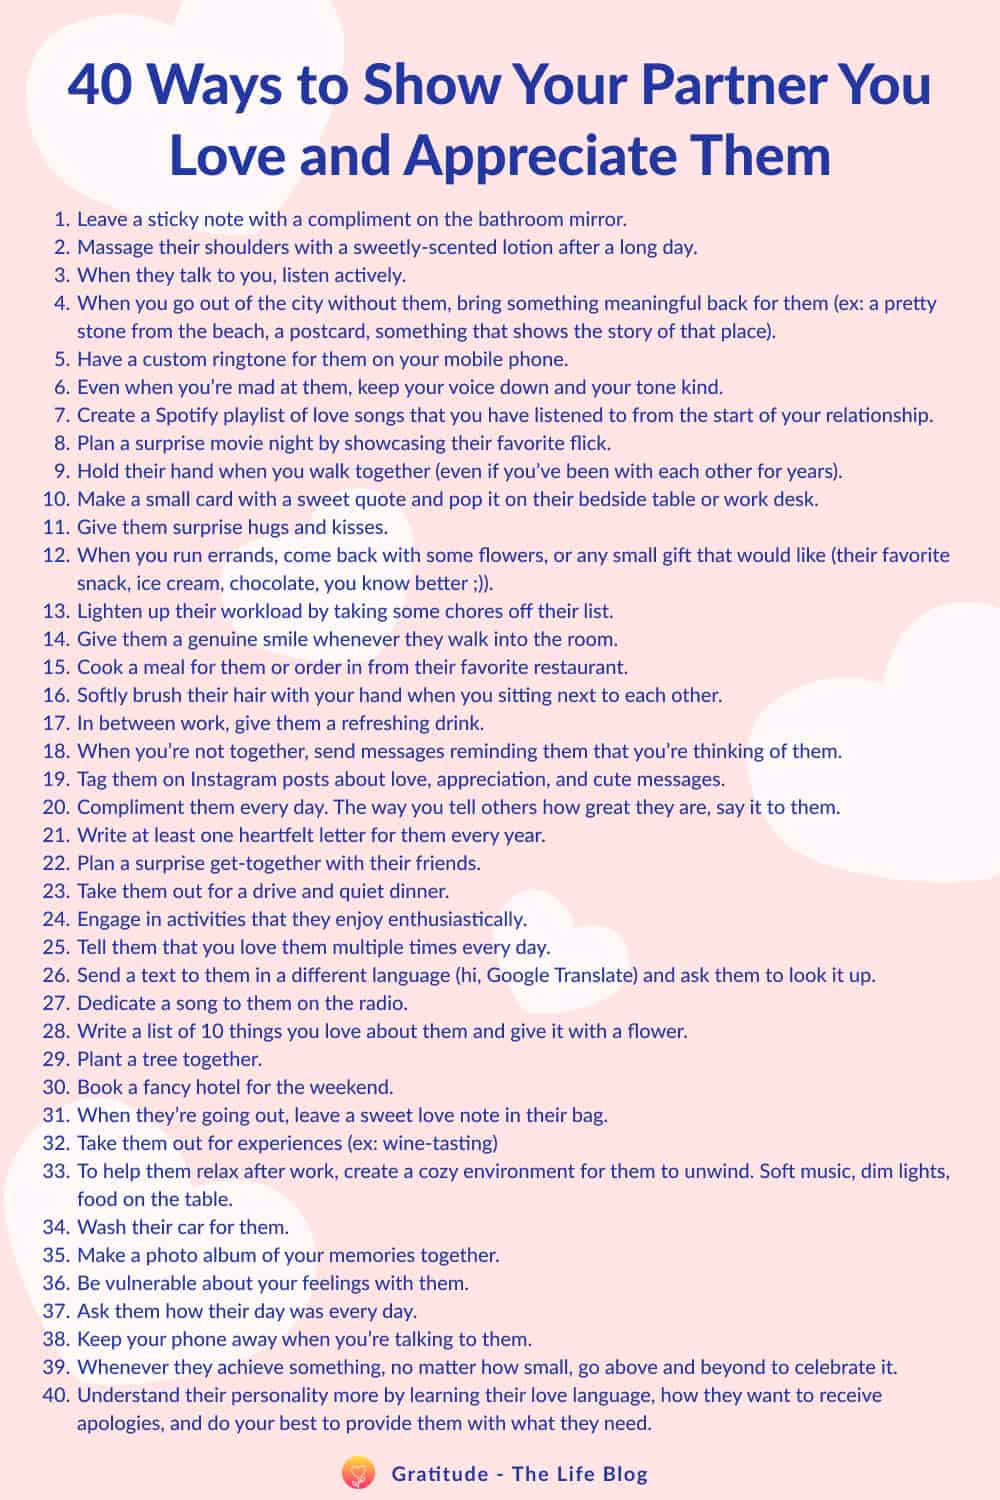 Image with the list of 40 ways to show your partner you love and appreciate them.